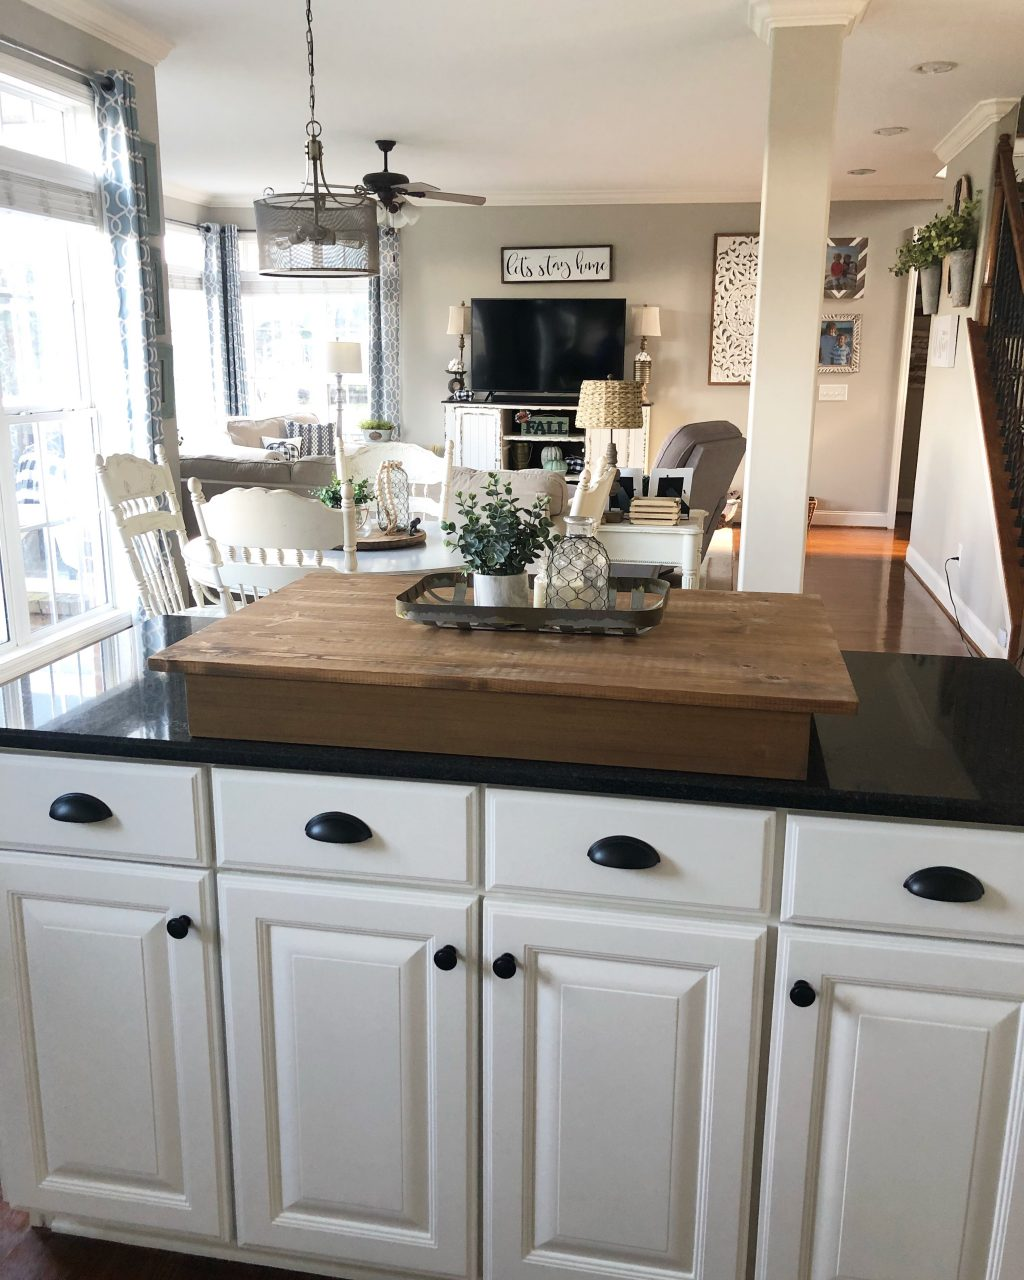 My Kitchen Cabinet Makeover Painted White Island With Black Cup